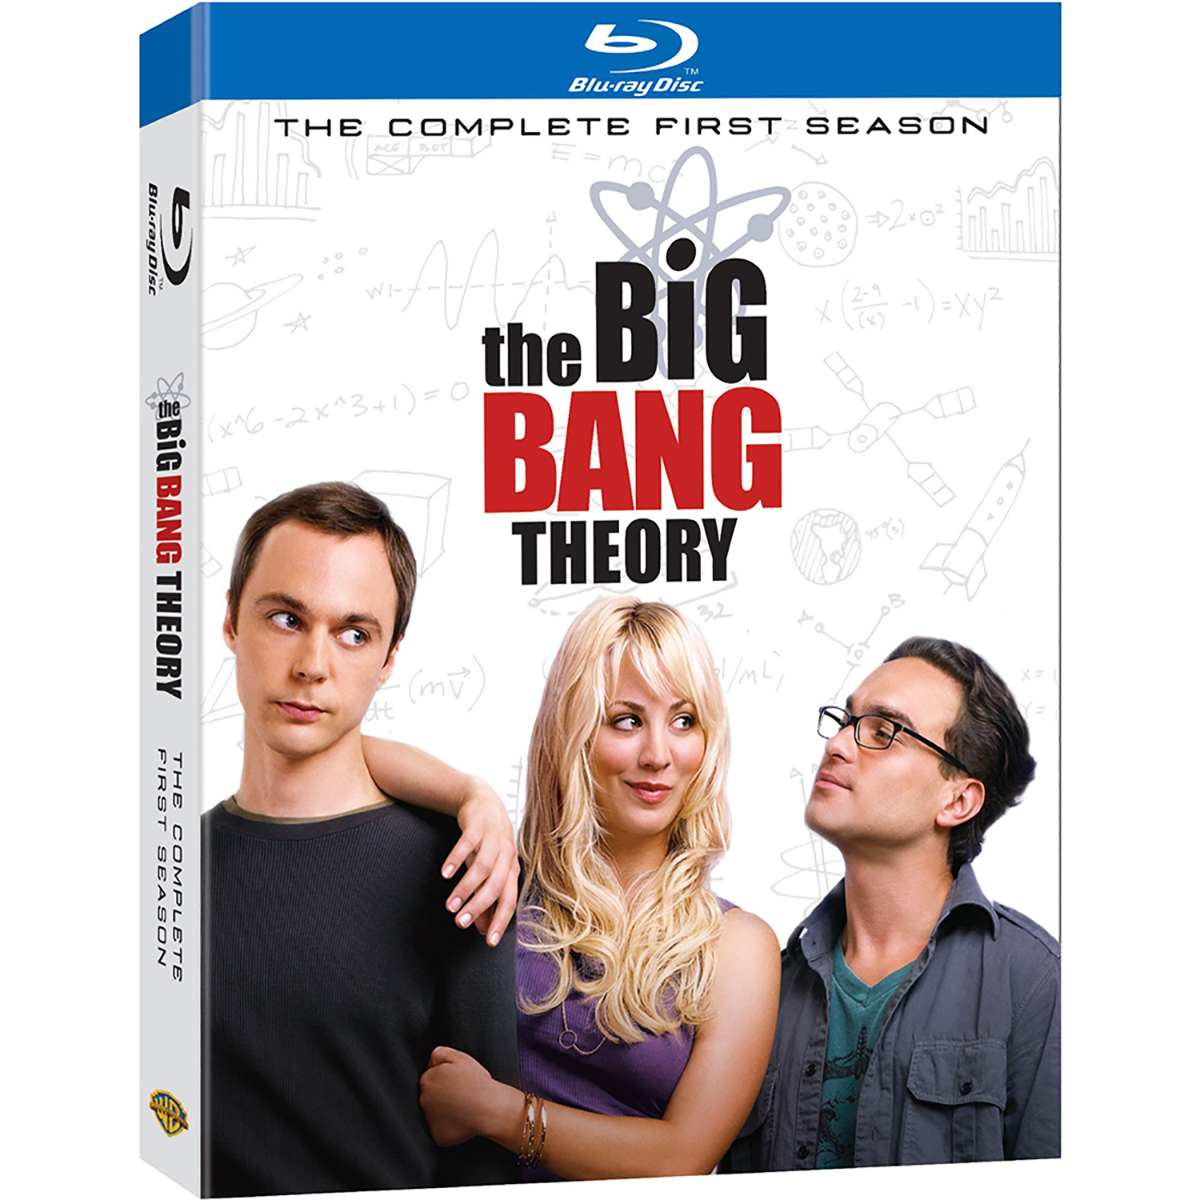 The Big Bang Theory: Season 1 Blu-ray -  DVDs & Videos 2870-478888